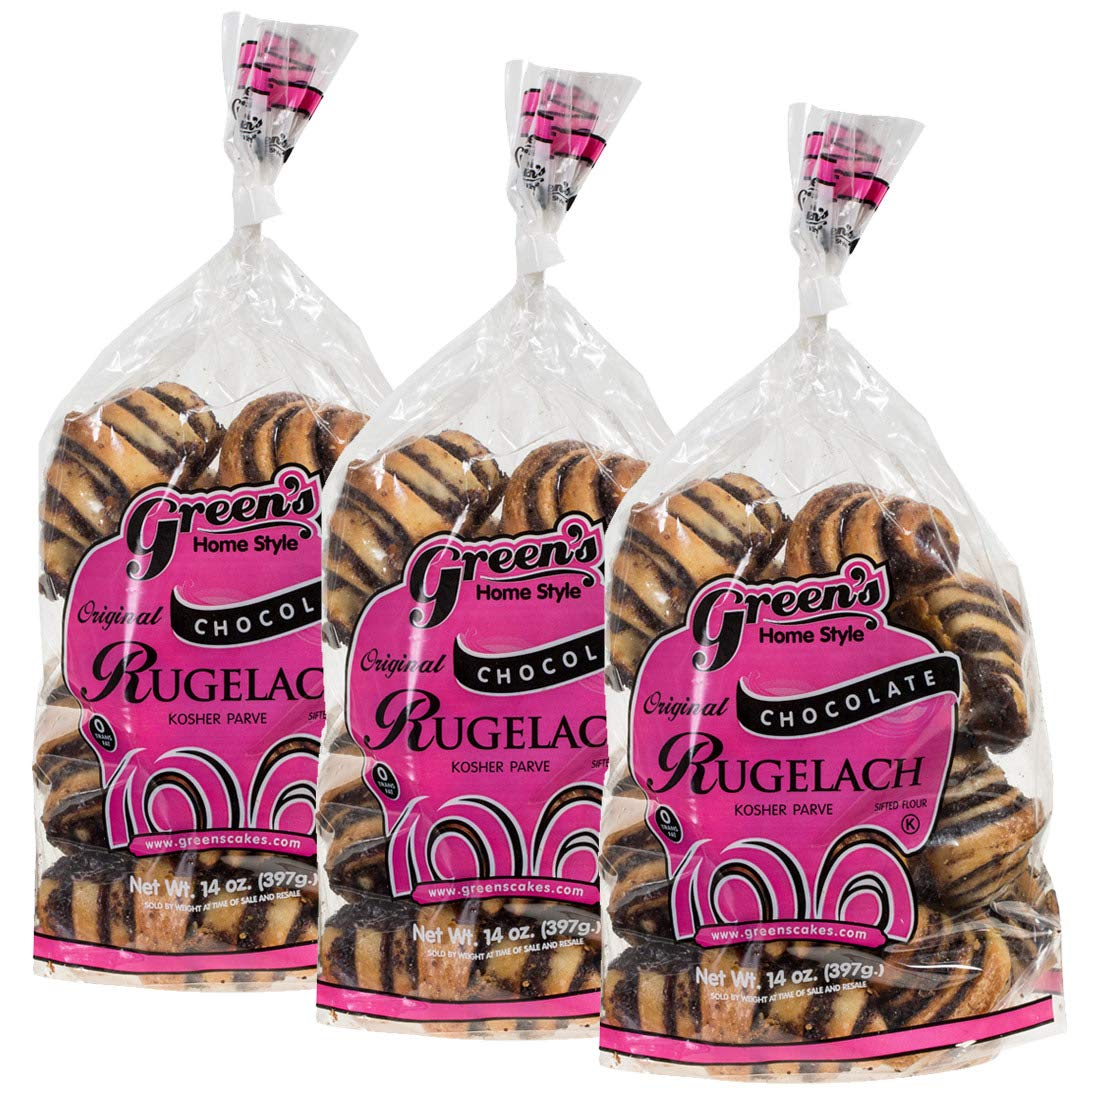 Green's Bakery Chocolate Rugelach Kosher Pastry, 14 oz - 3 Pack